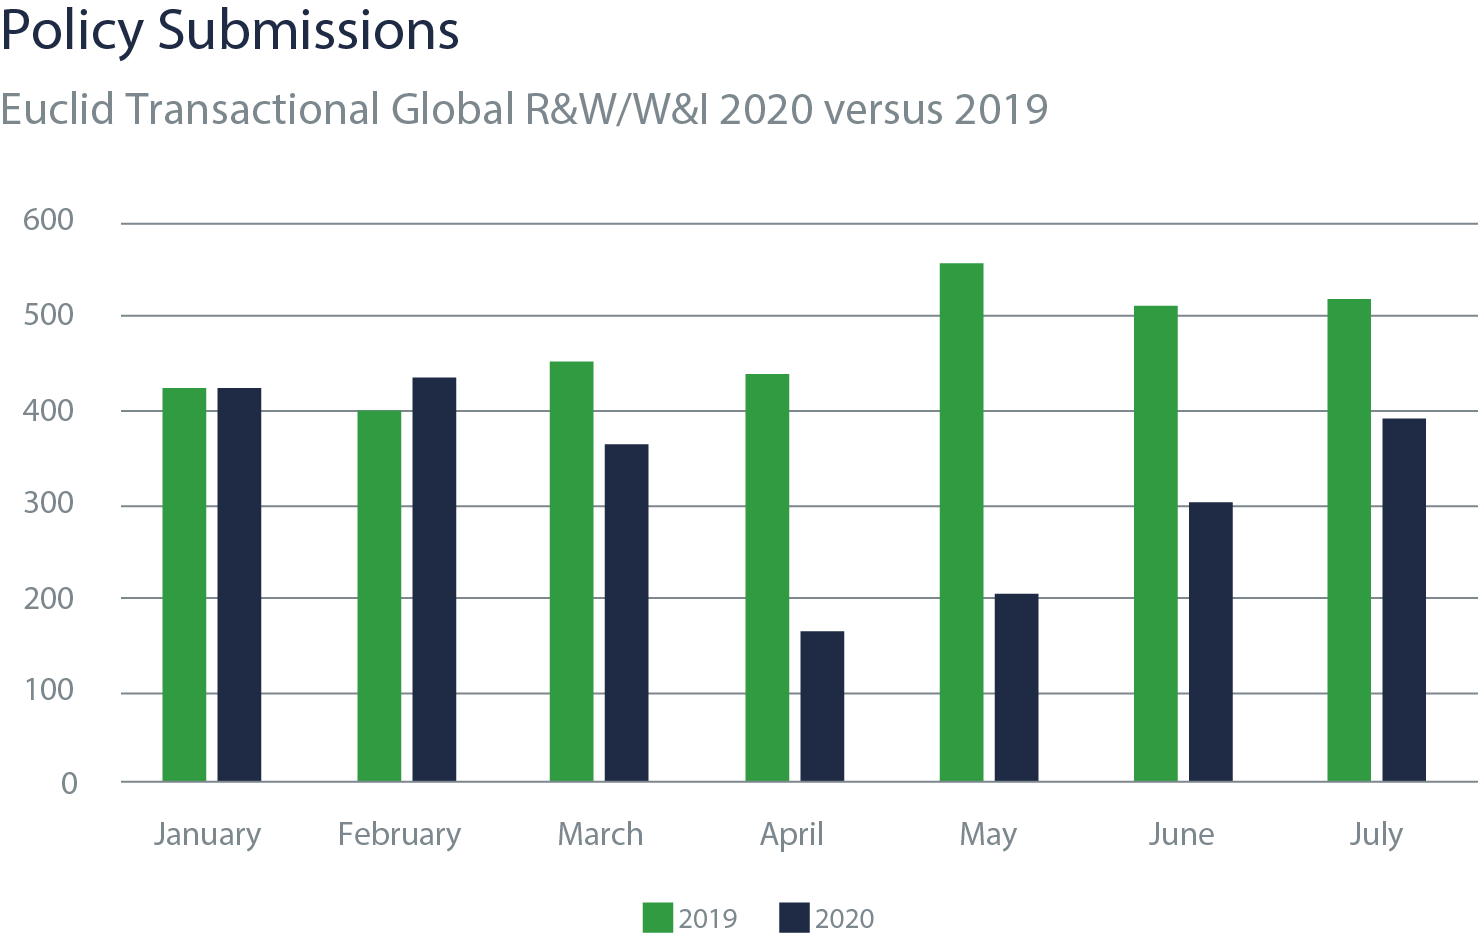 Policy submissions graphic showing Euclid Transactional Global R&W/W&I 2020 versus 2019